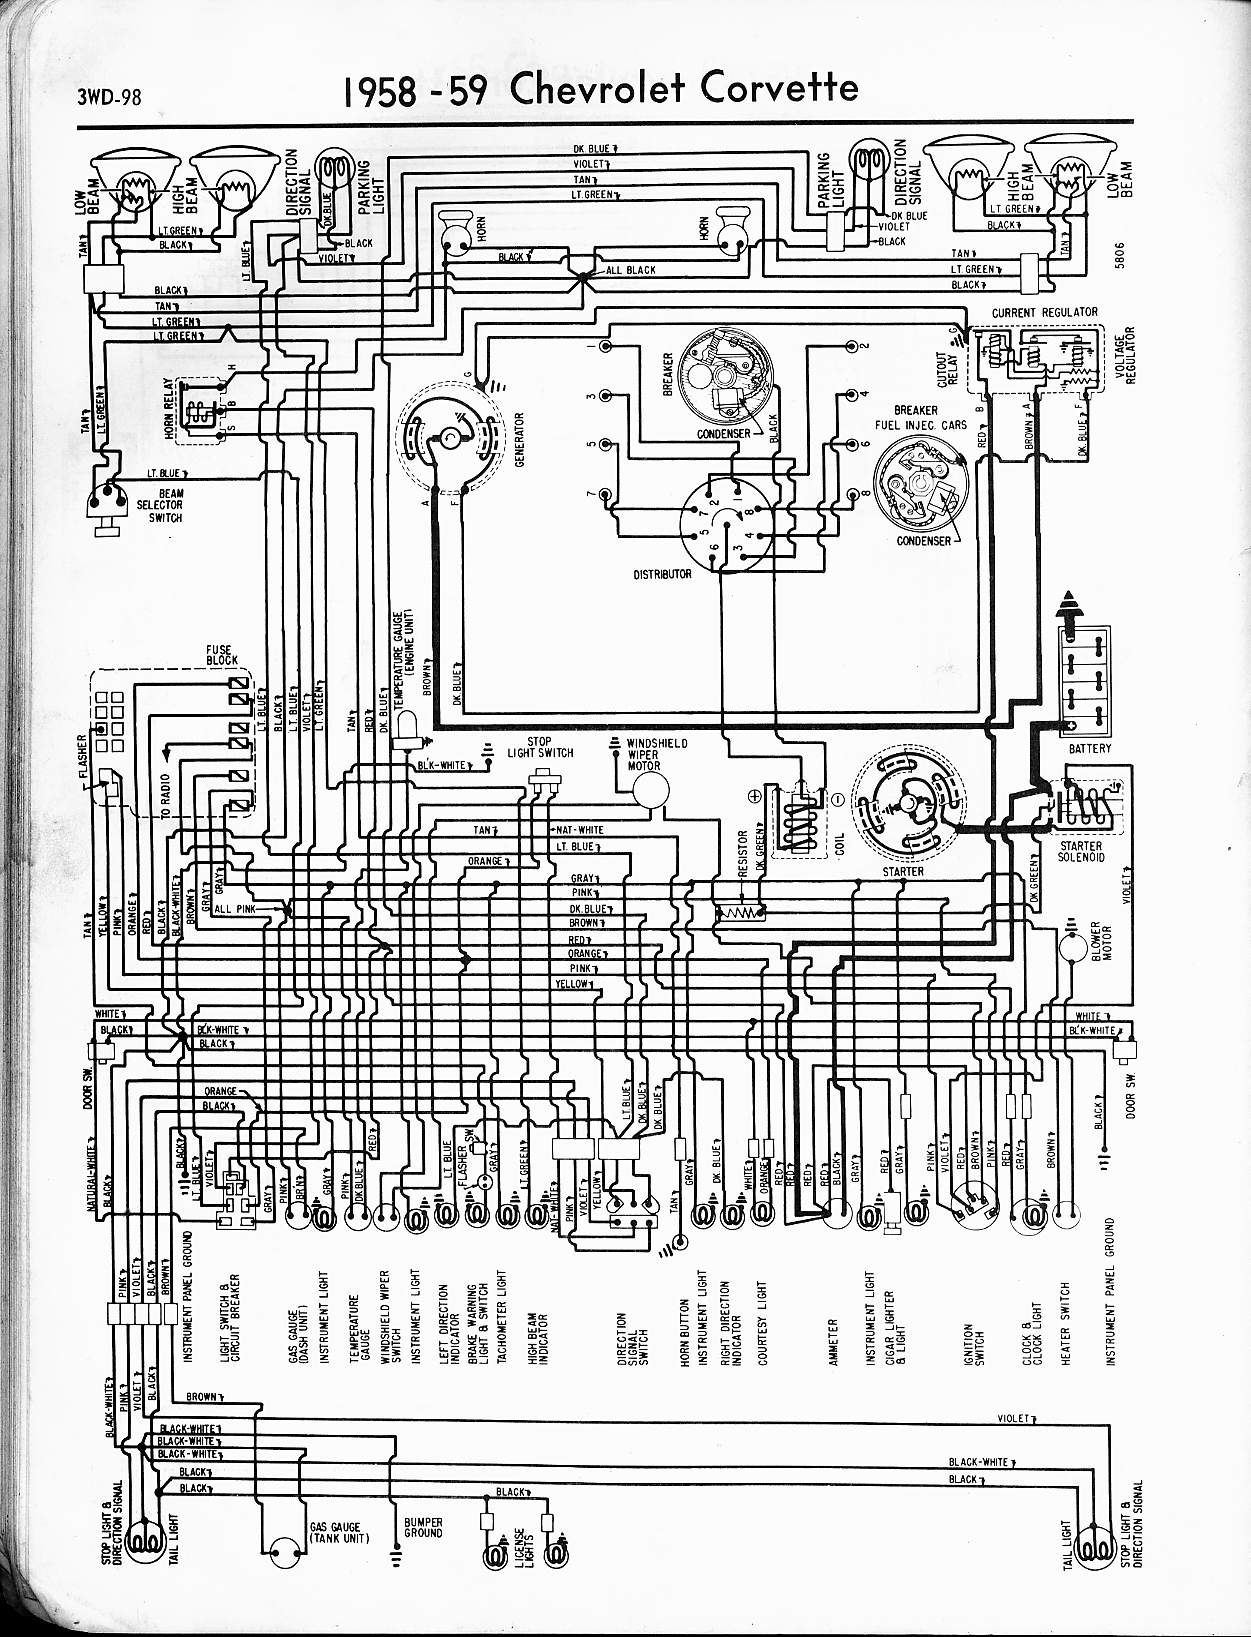 1957 Corvette Wiring Diagram Schematics 1971 Chevy Diagrams 57 65 Chevelle Ss